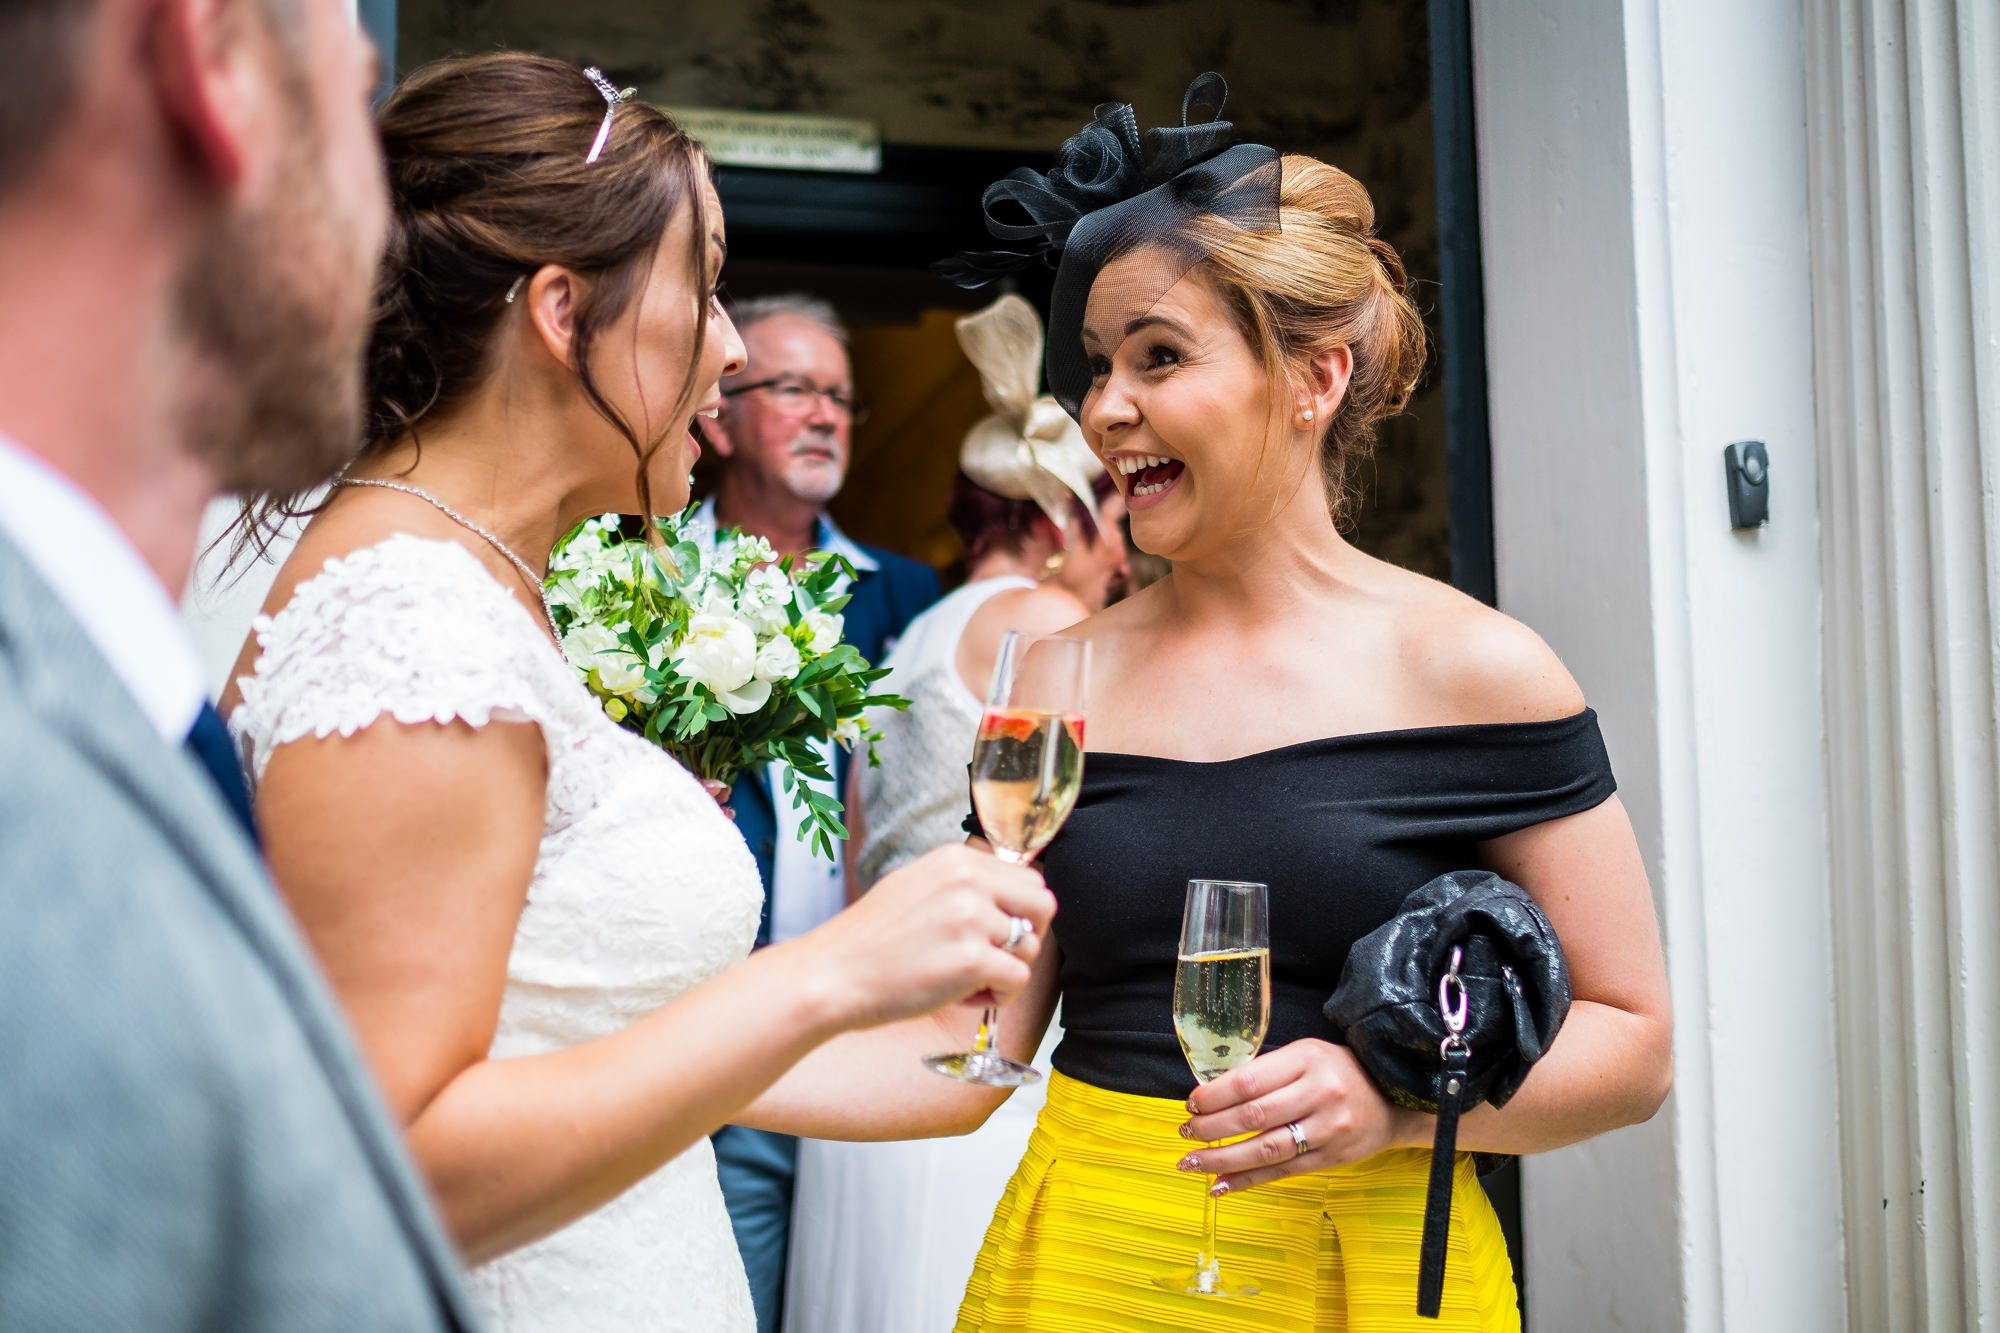 guest smiling at bride